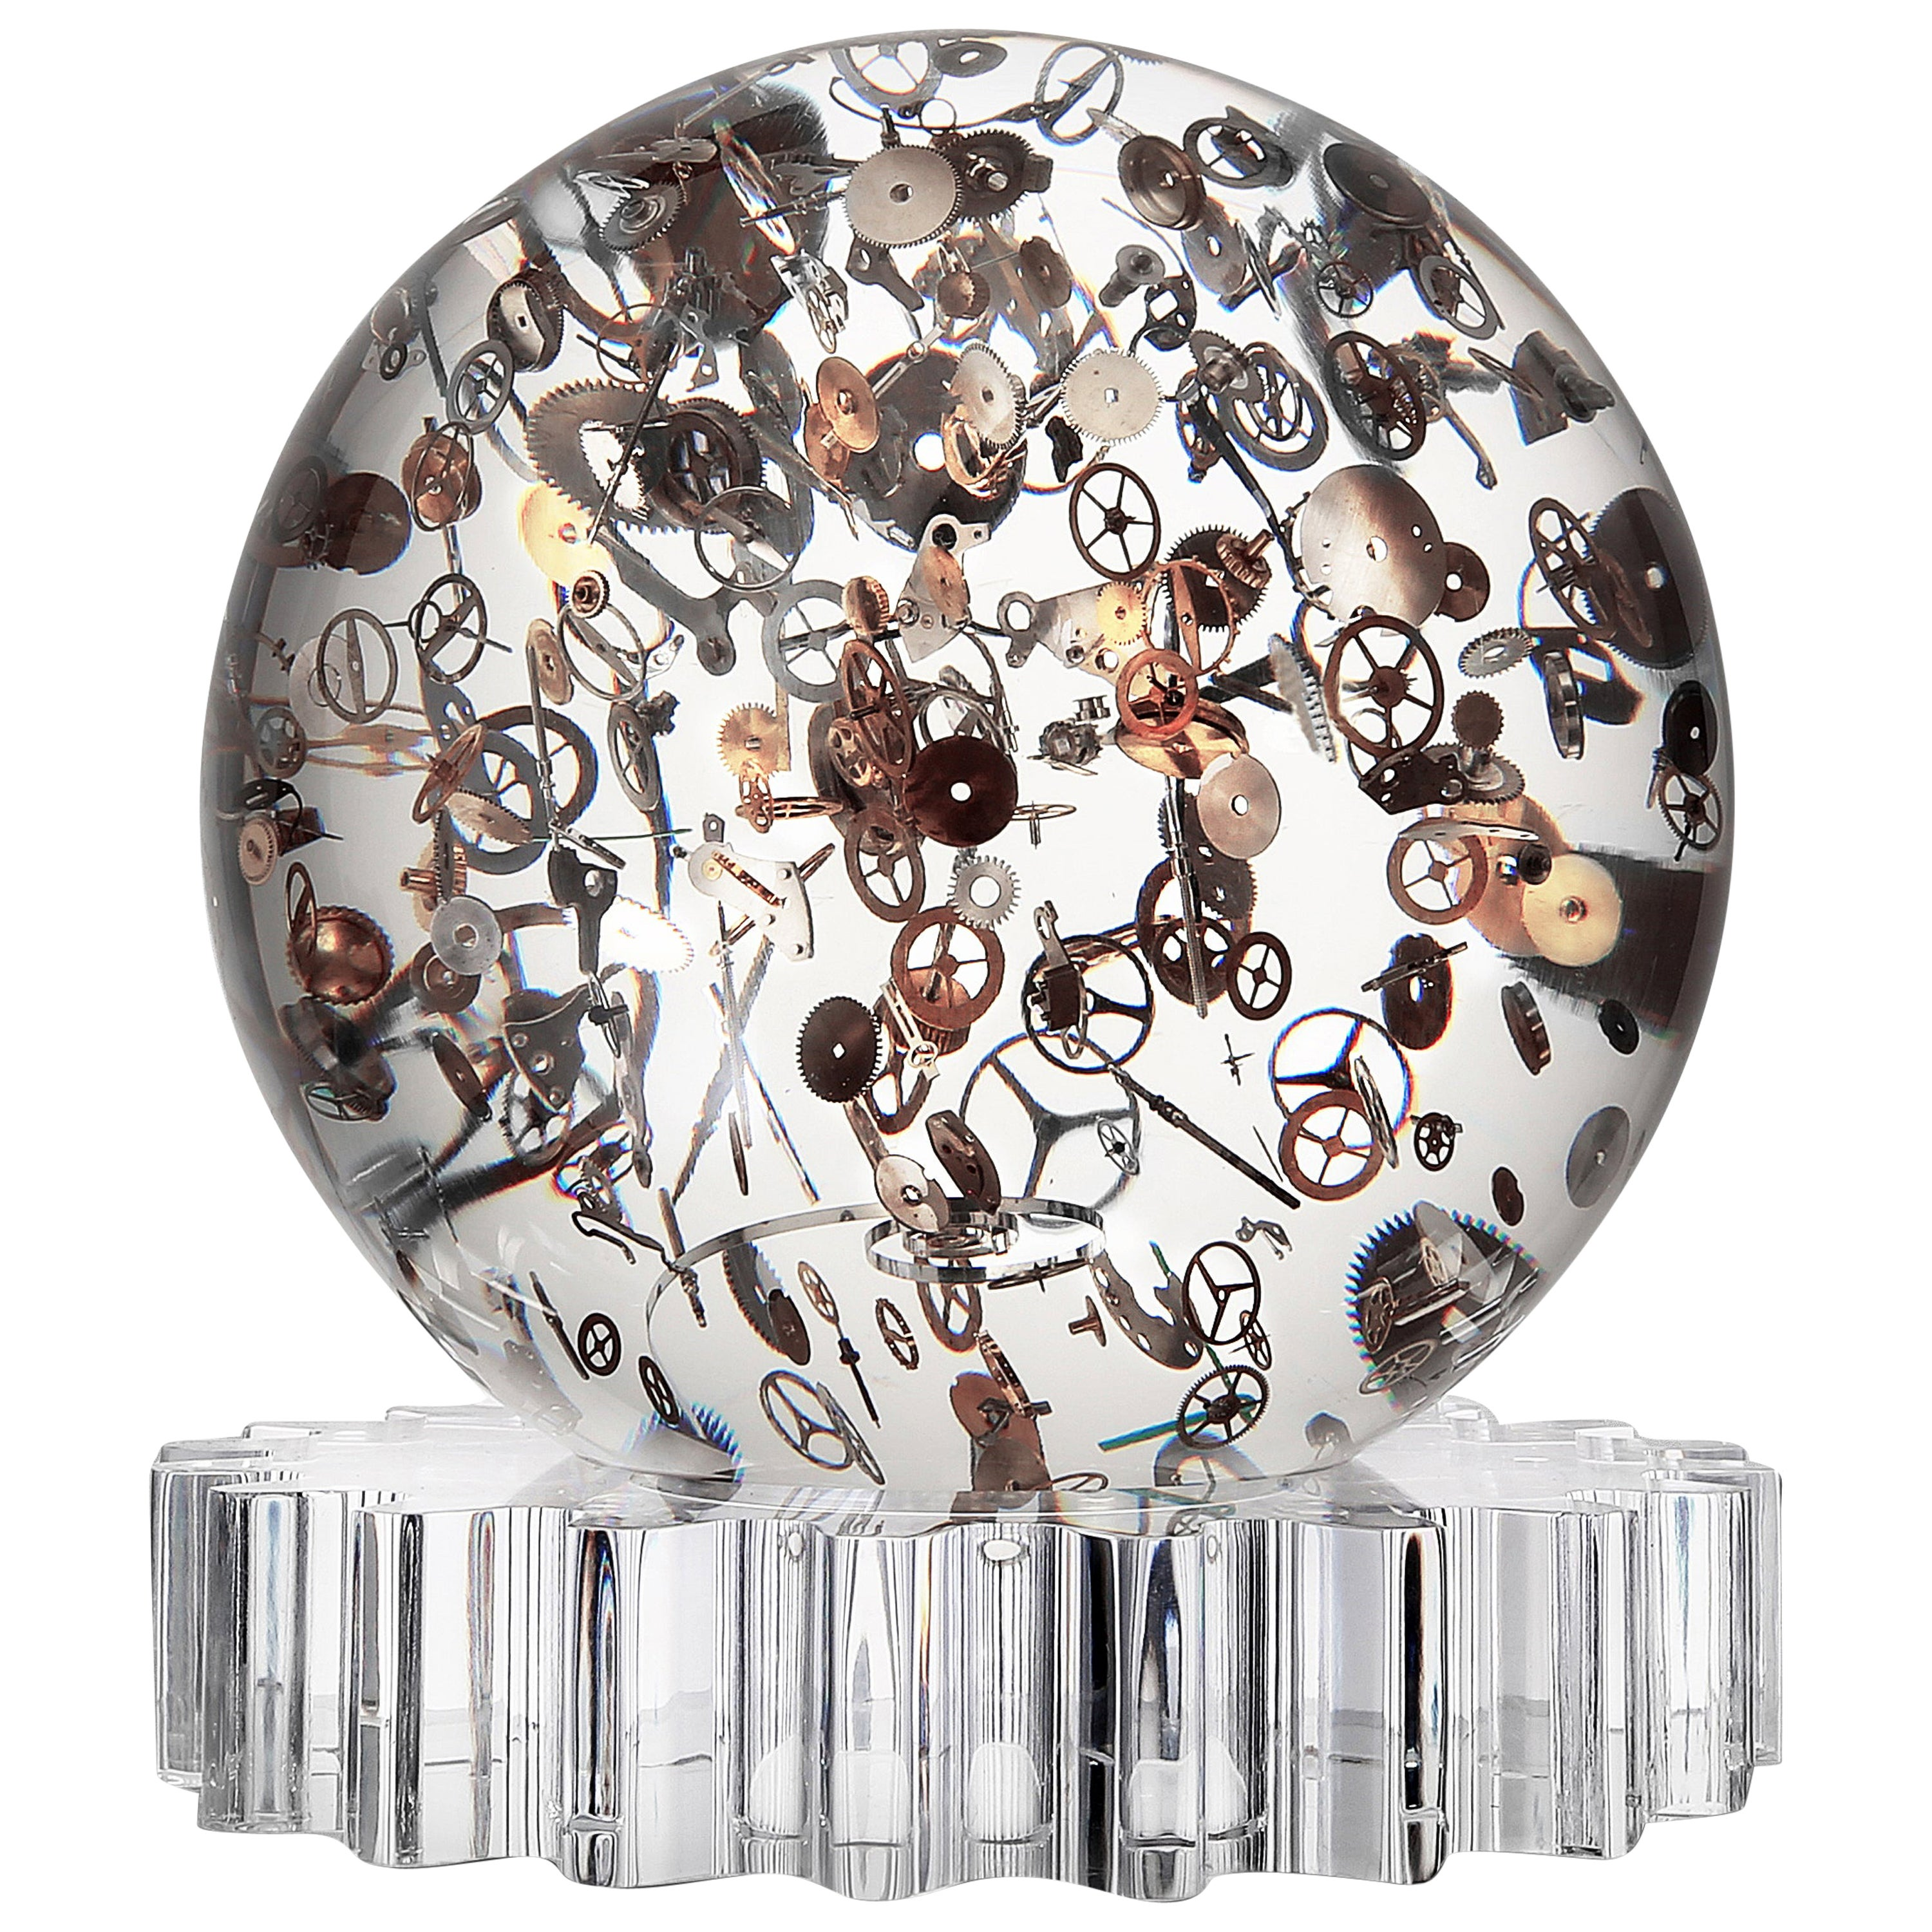 """Berd Vay'e Limited Edition """"Horosphere"""" Lucite Sculpture 'Small'"""